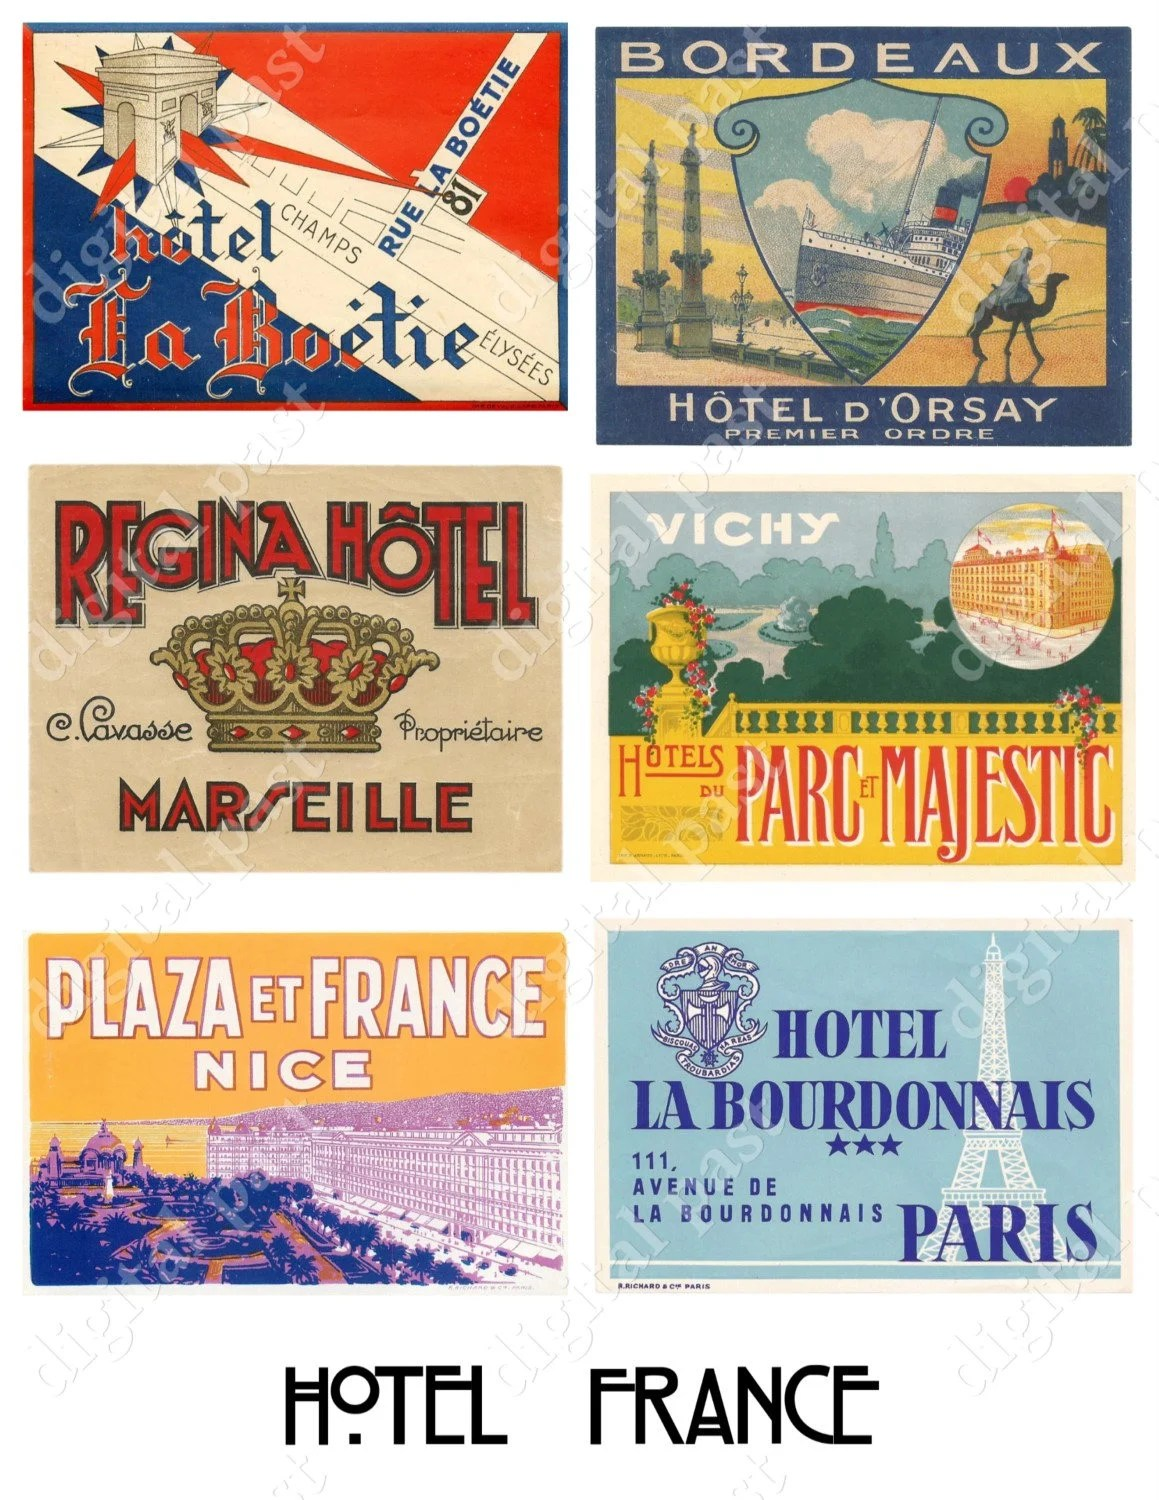 Stickers Bordeaux Hotel France Digital Download Printable Collage Sheet Collection Of Vintage French Hotel Luggage Labels Travel Stickers Paris Bordeaux